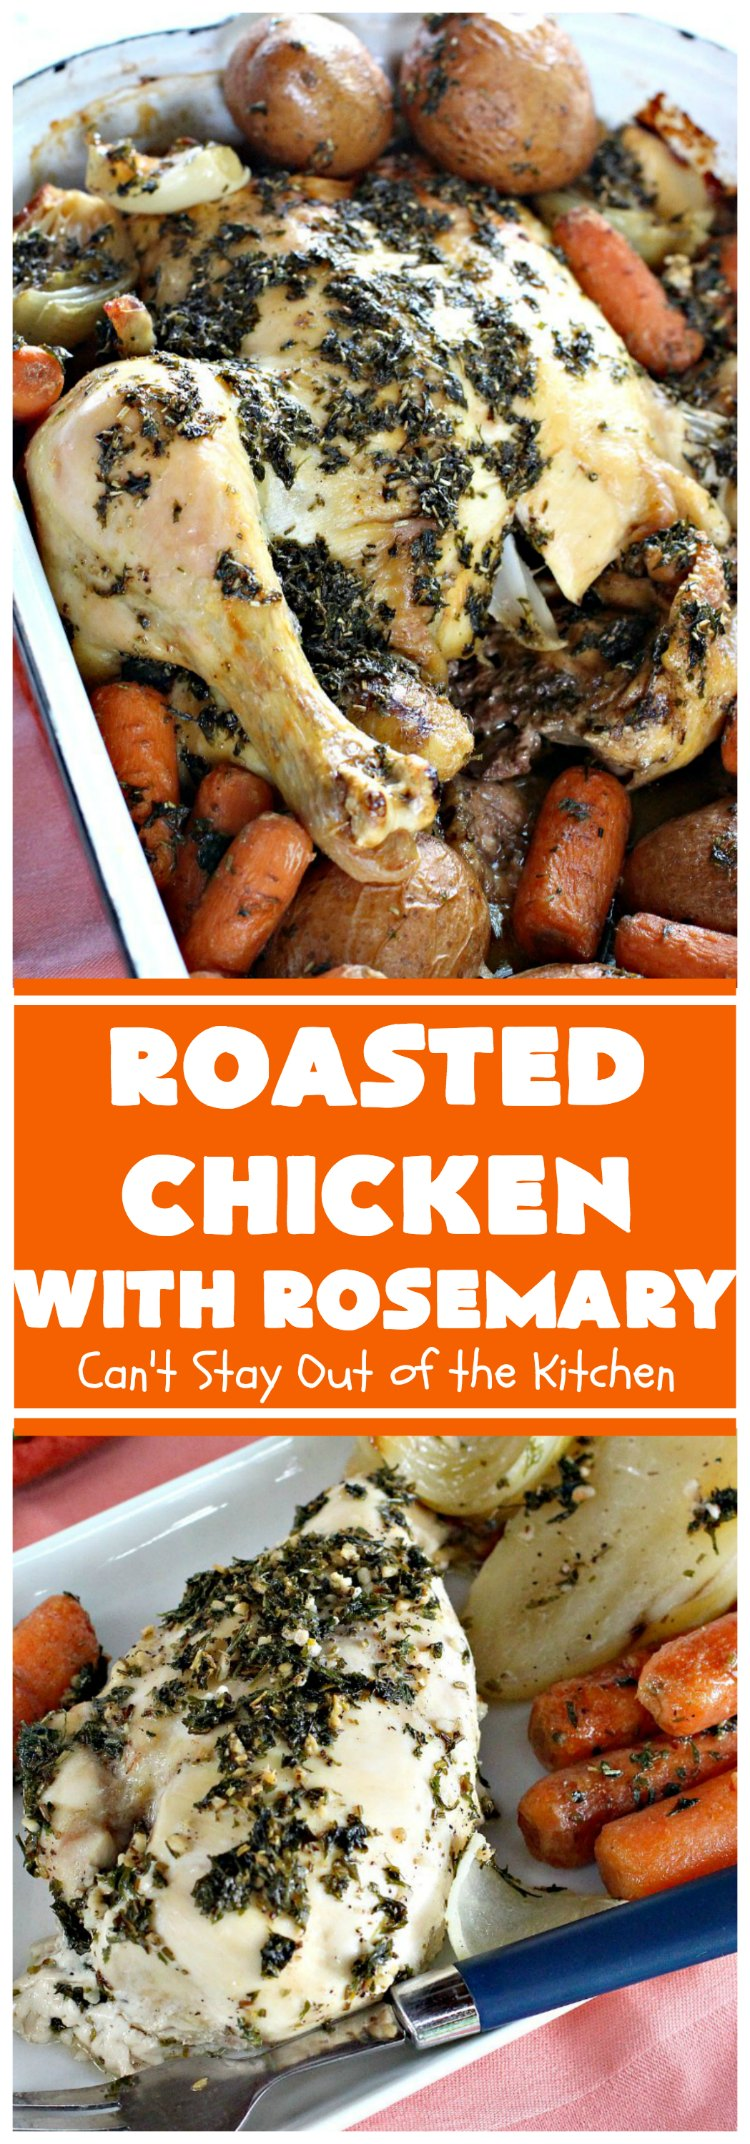 Roasted Chicken with Rosemary | Can't Stay Out of the Kitchen